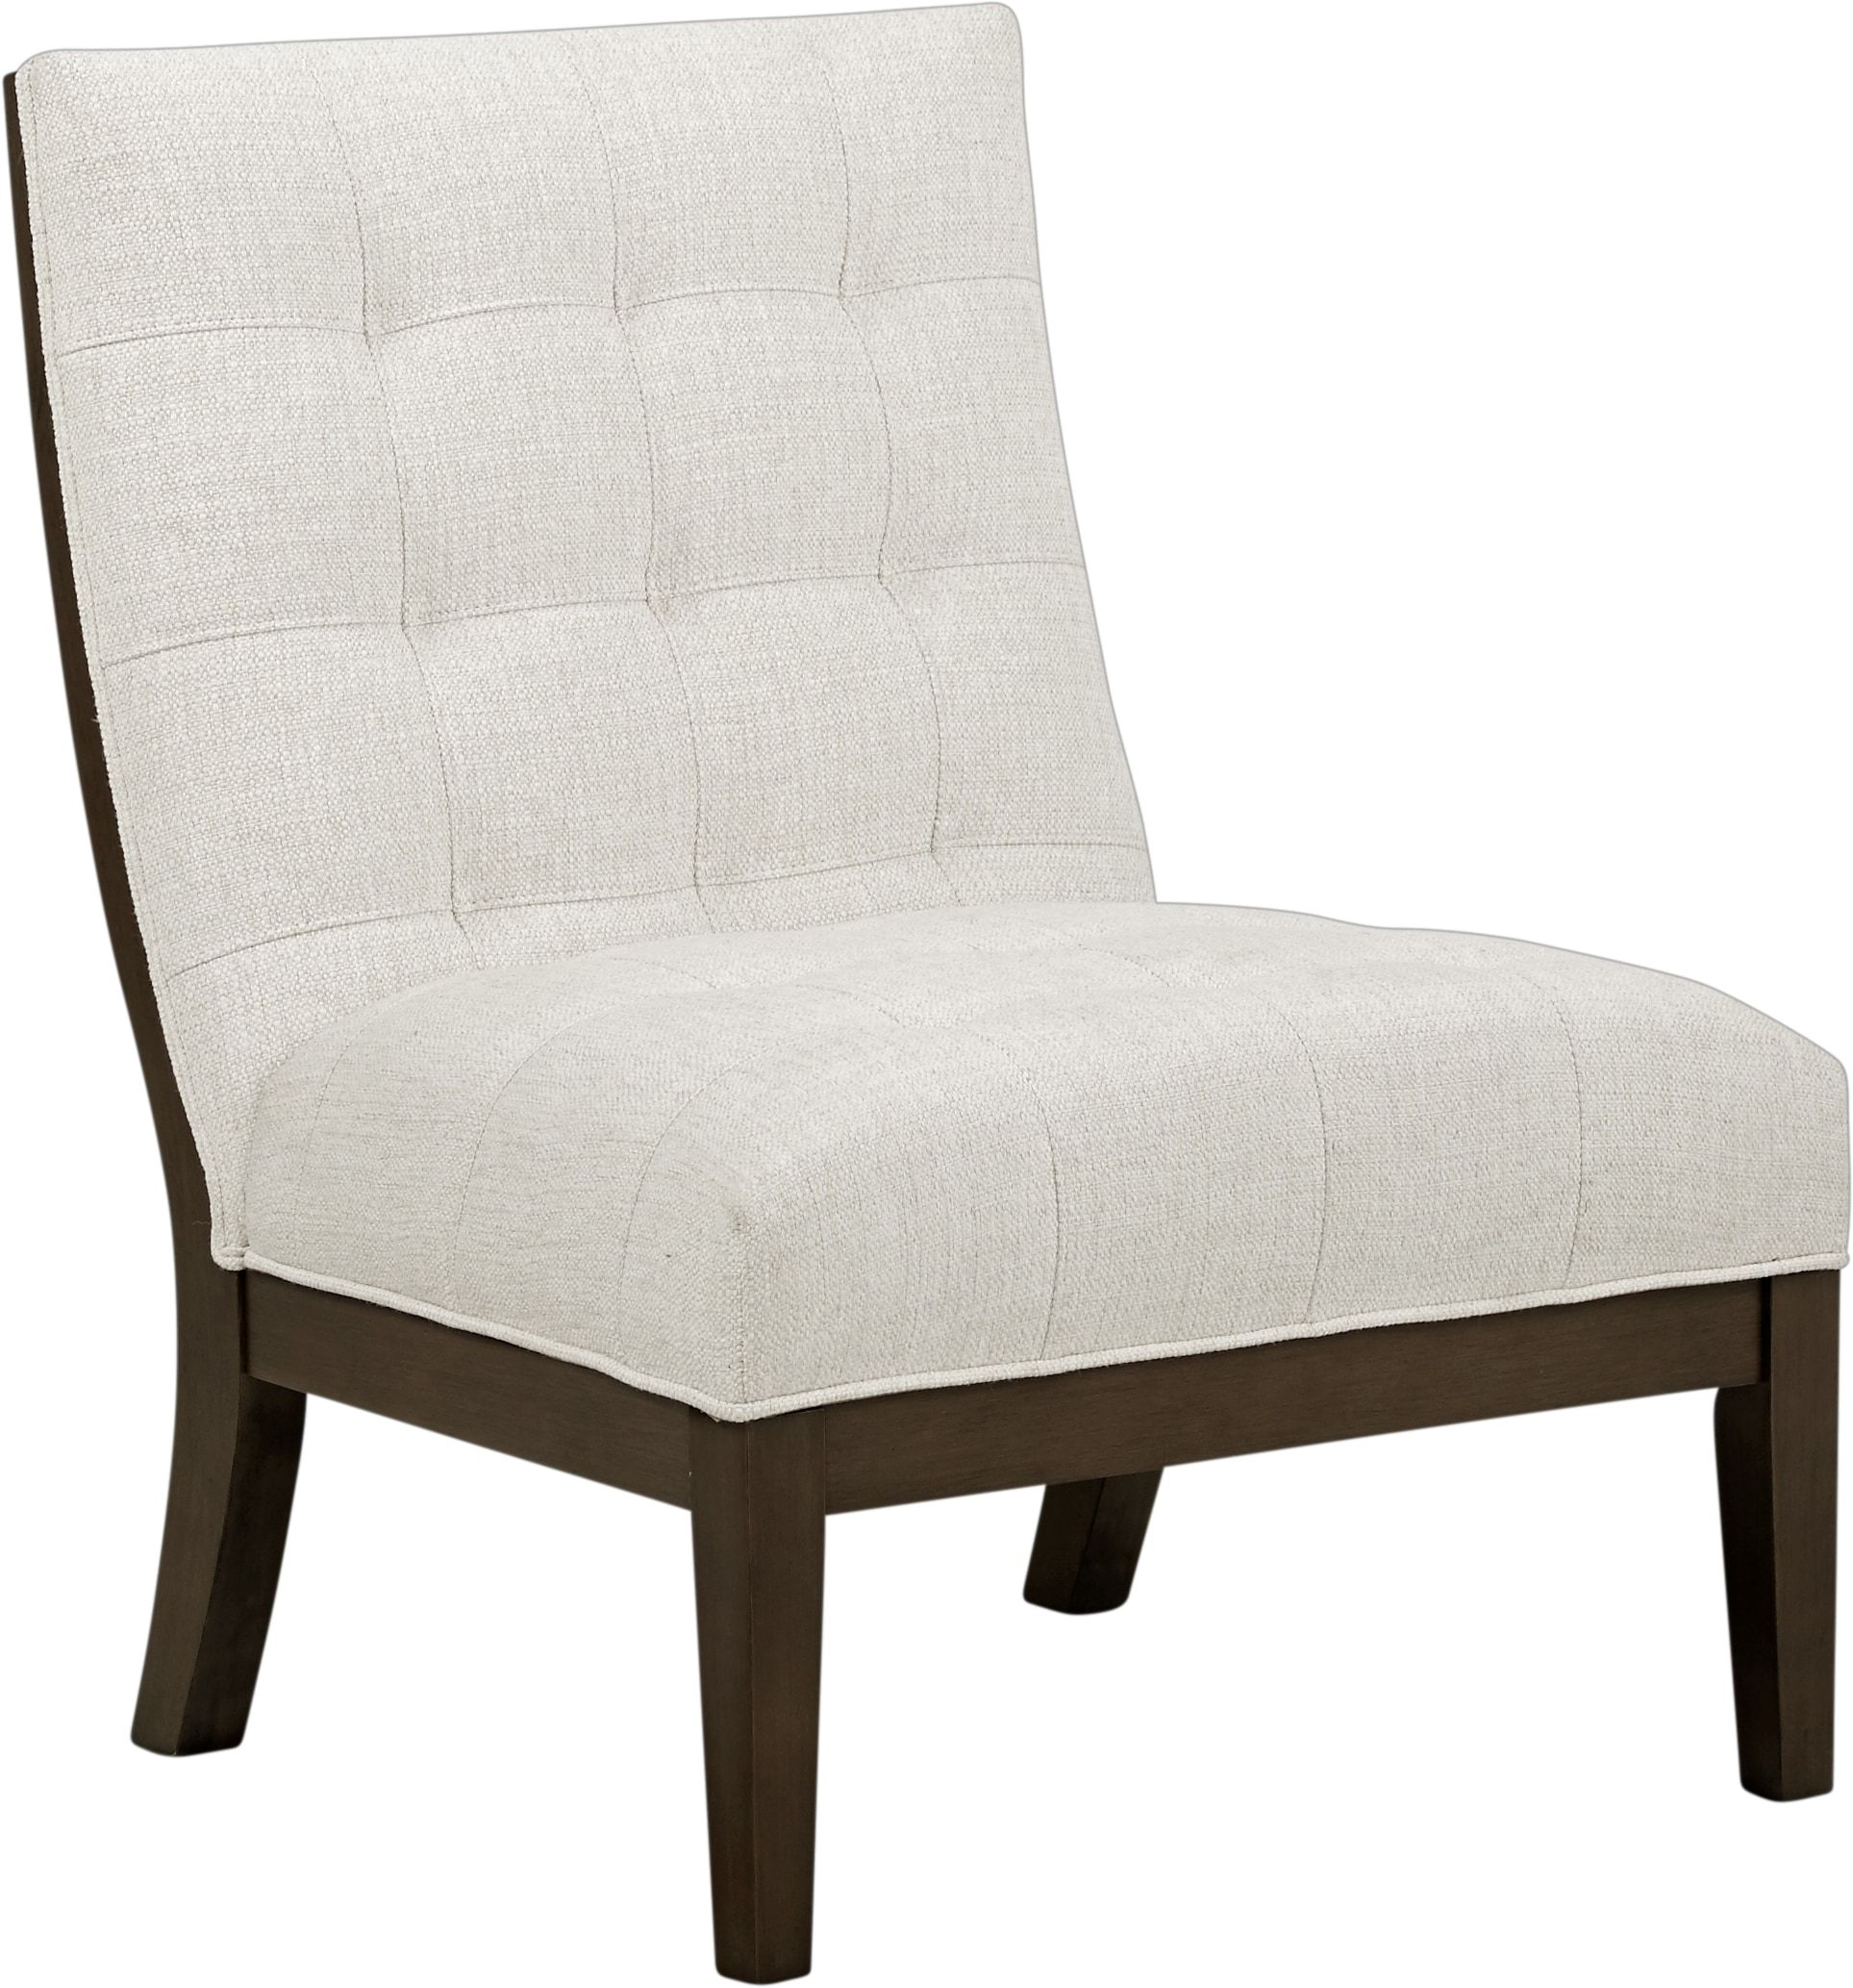 Strange Cindy Crawford Home Park Boulevard Off White Textured Accent Gamerscity Chair Design For Home Gamerscityorg